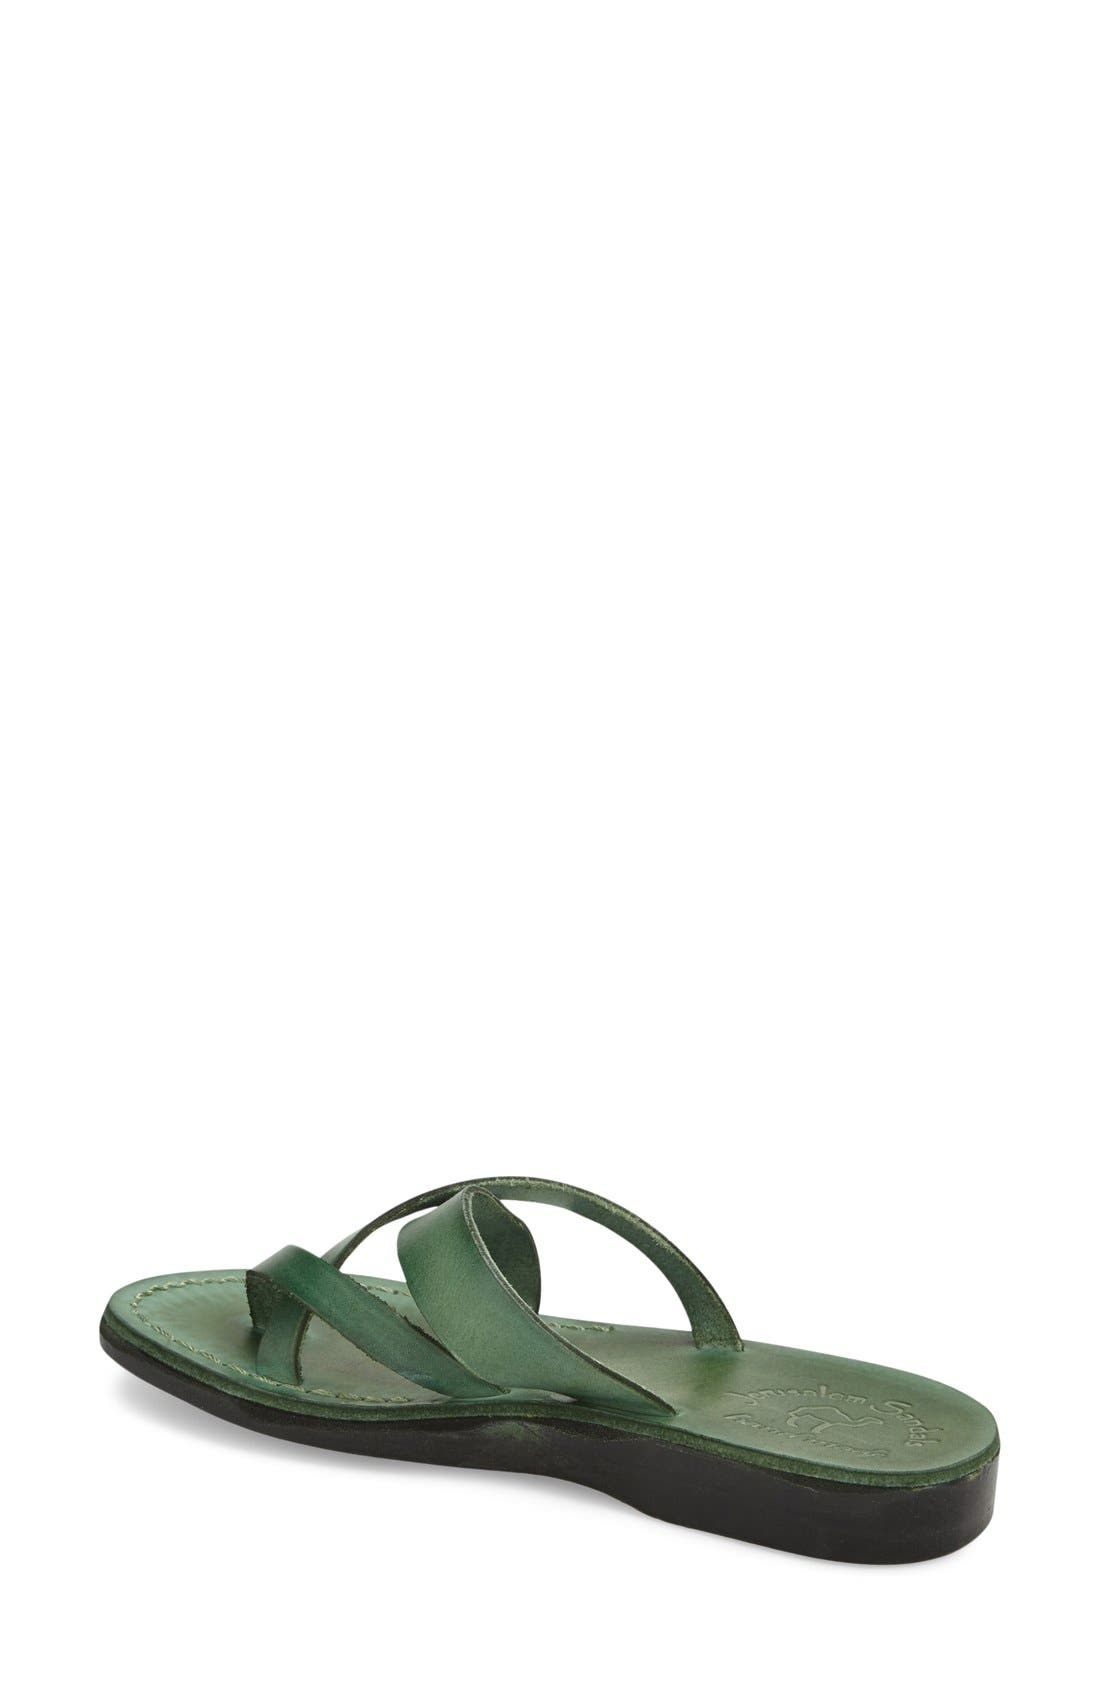 'Abigail' Strappy Slide Sandal,                             Alternate thumbnail 2, color,                             Green Leather